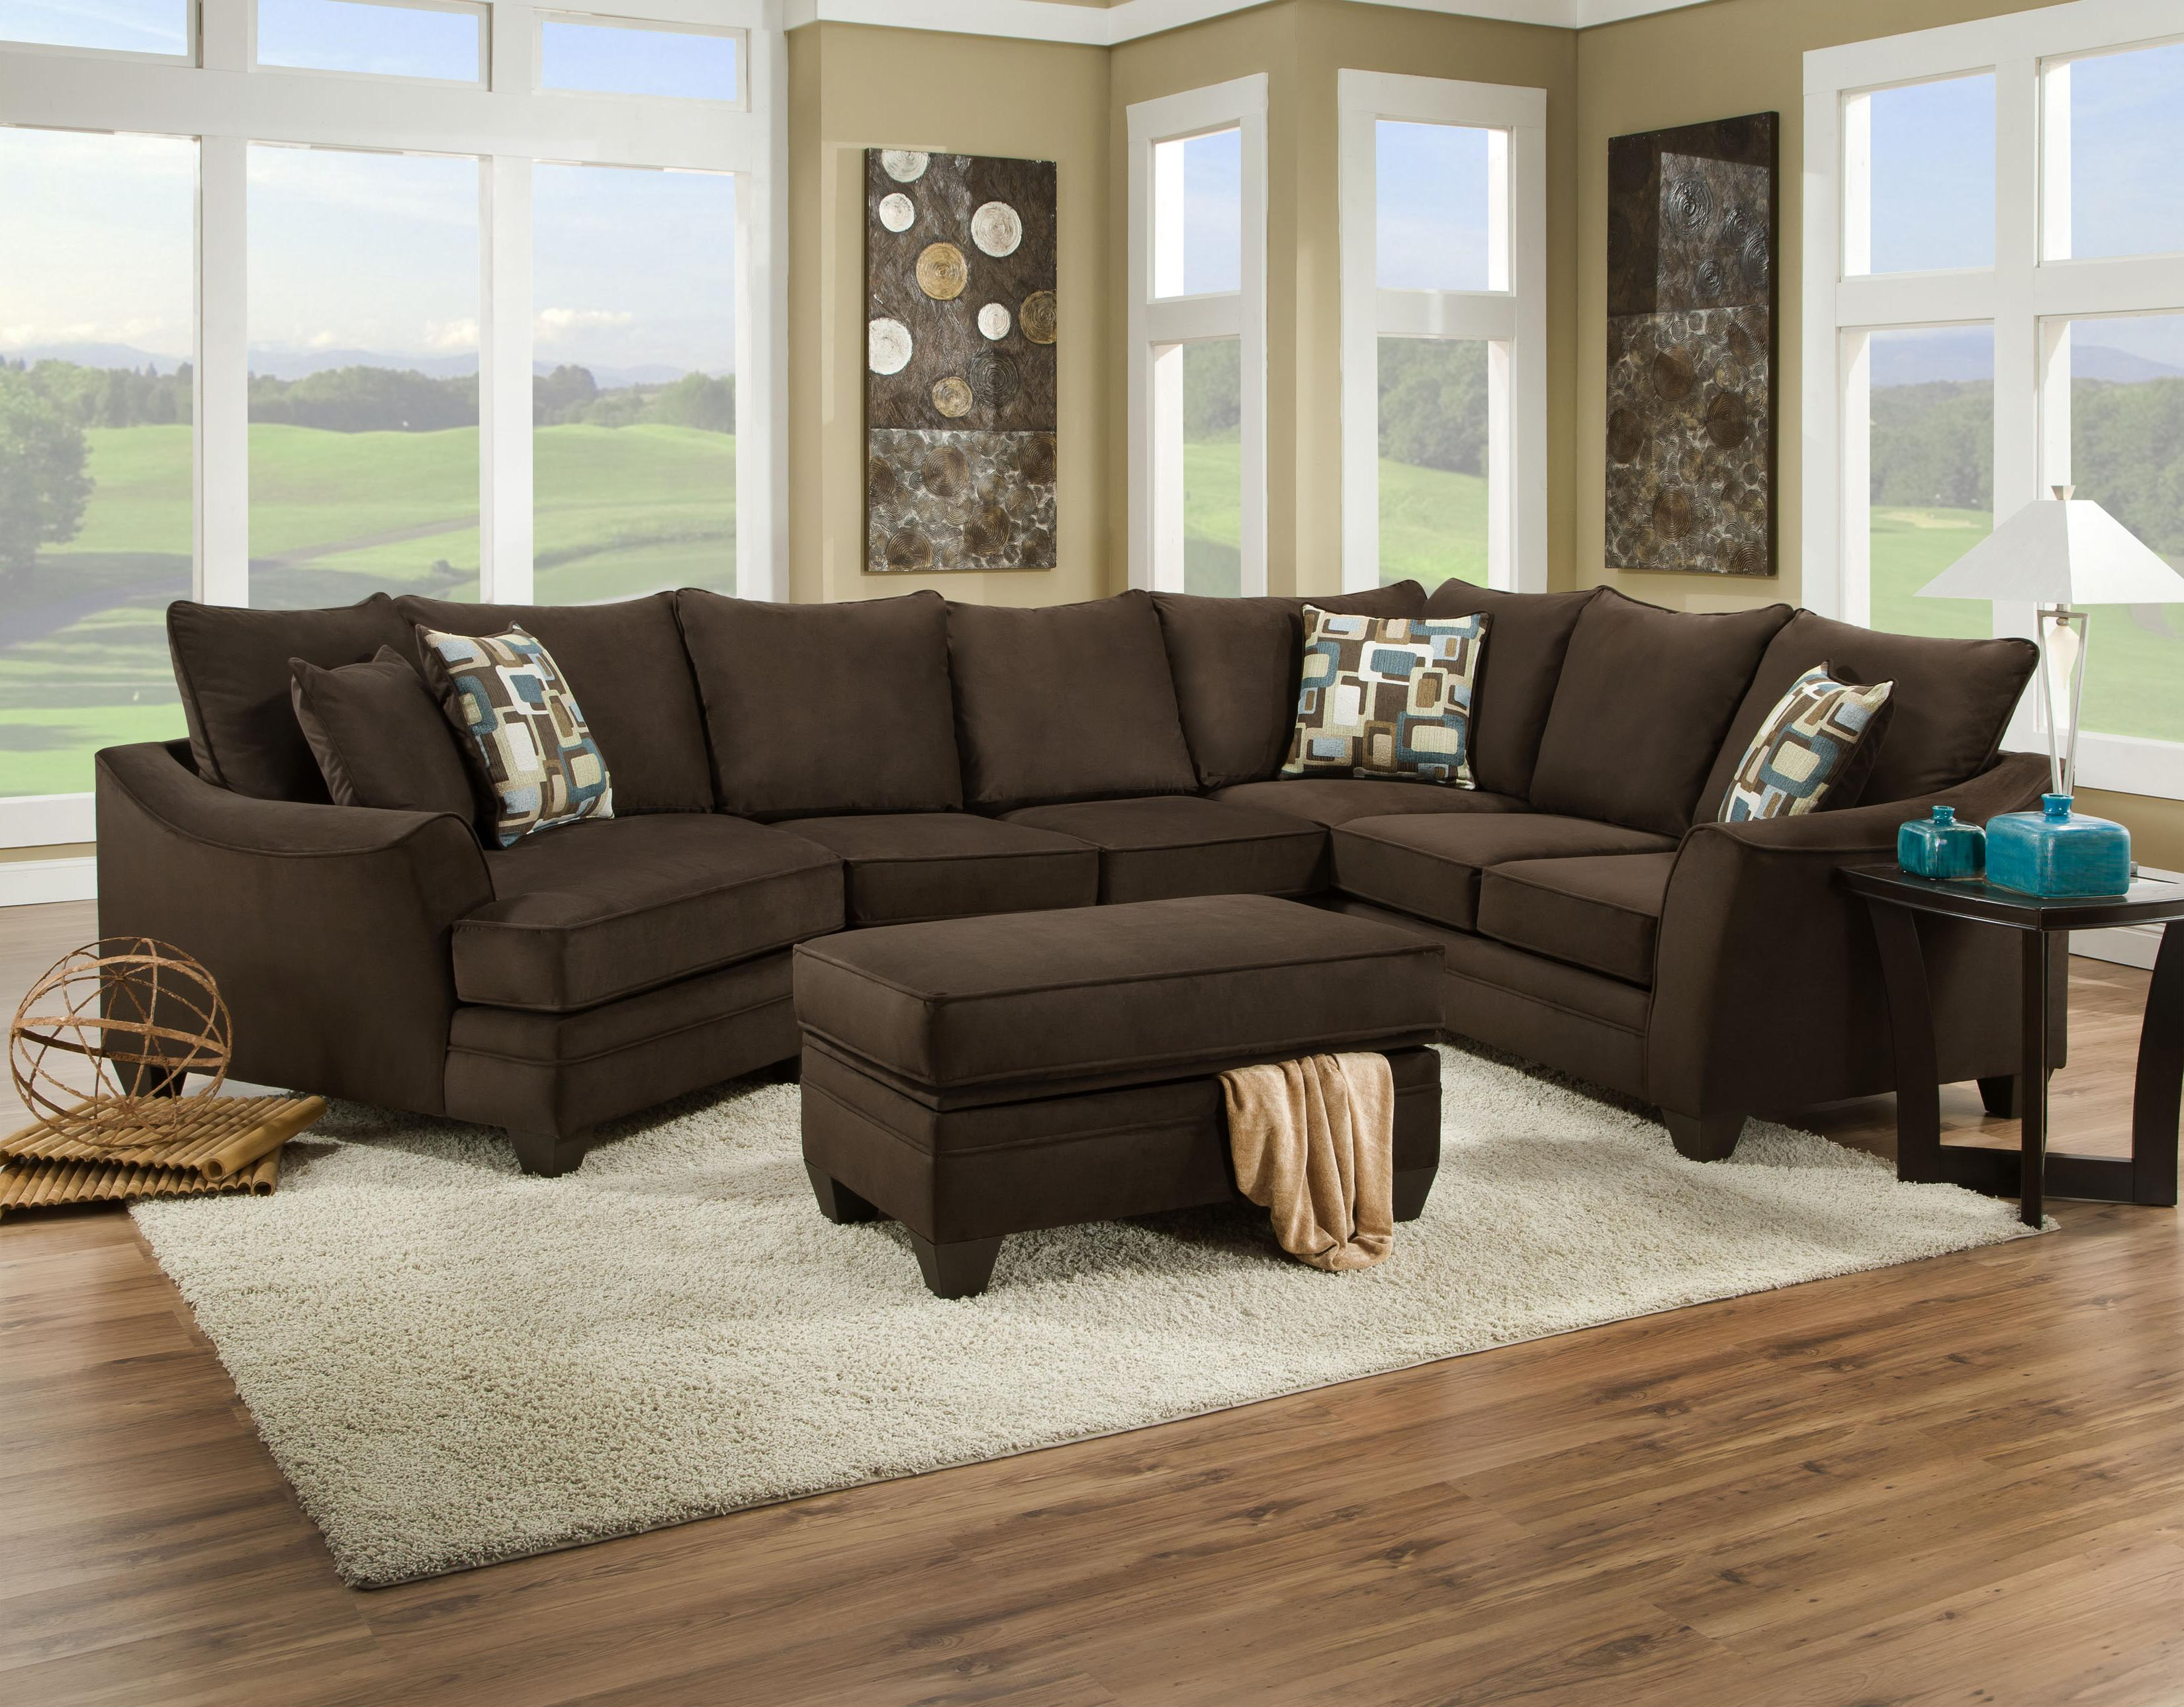 3810 Sectional Sofa by Peak Living at Prime Brothers Furniture